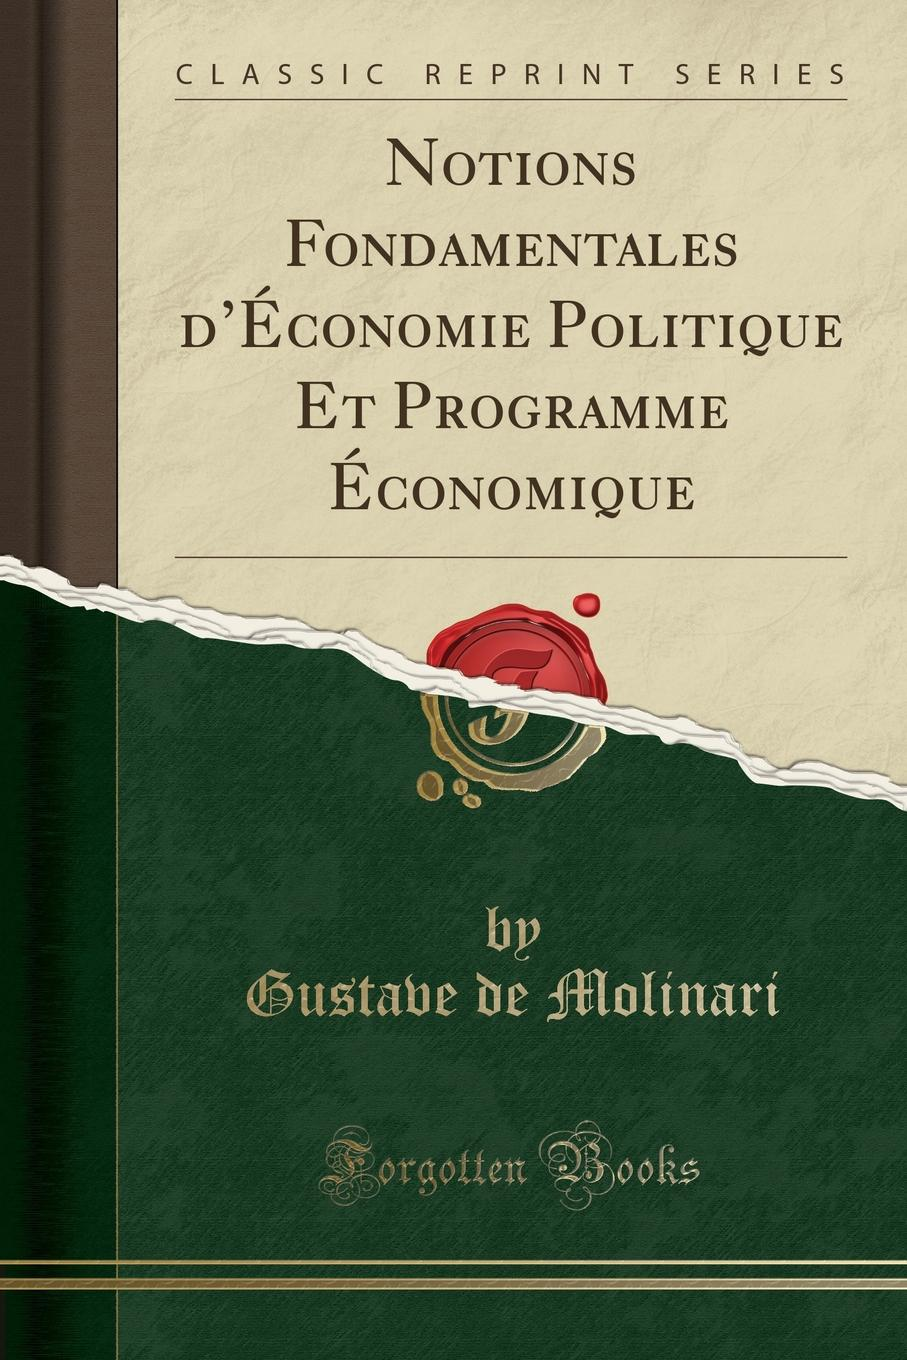 Notions Fondamentales d.Economie Politique Et Programme Economique (Classic Reprint) Excerpt from Notions Fondamentales d'Р?conomie Politique...